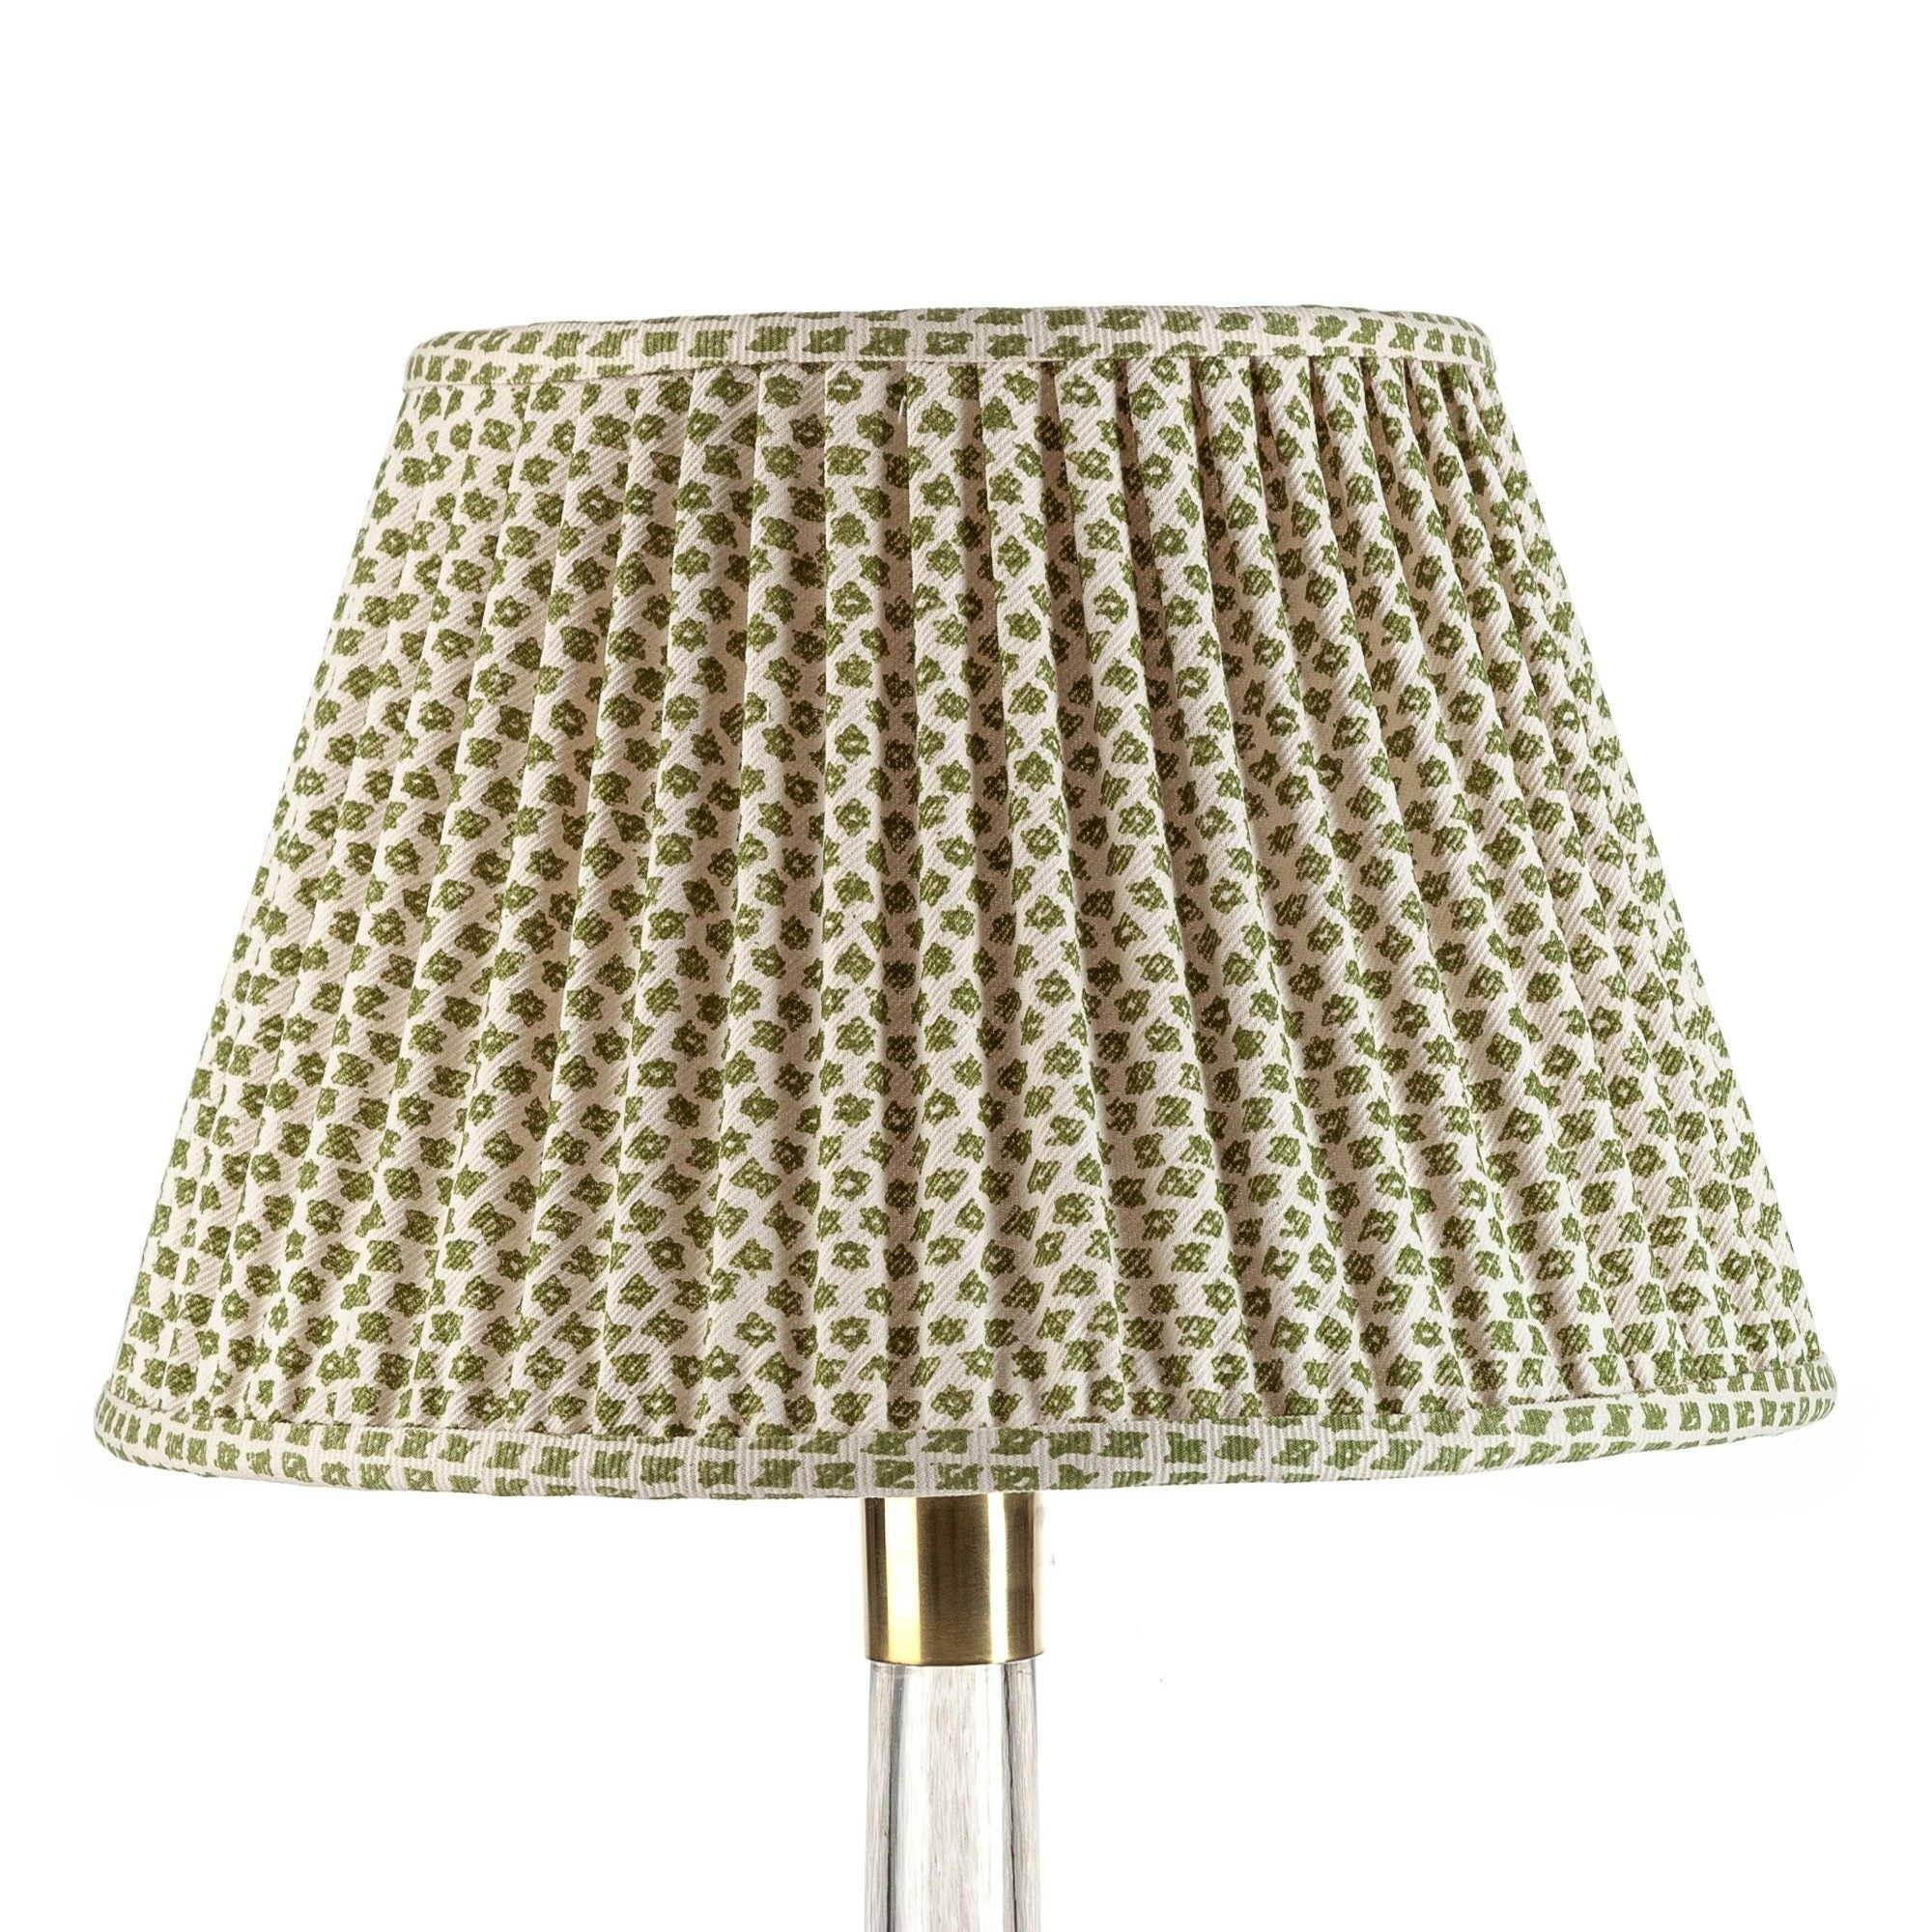 Fermoie Lampshade in Green Marden